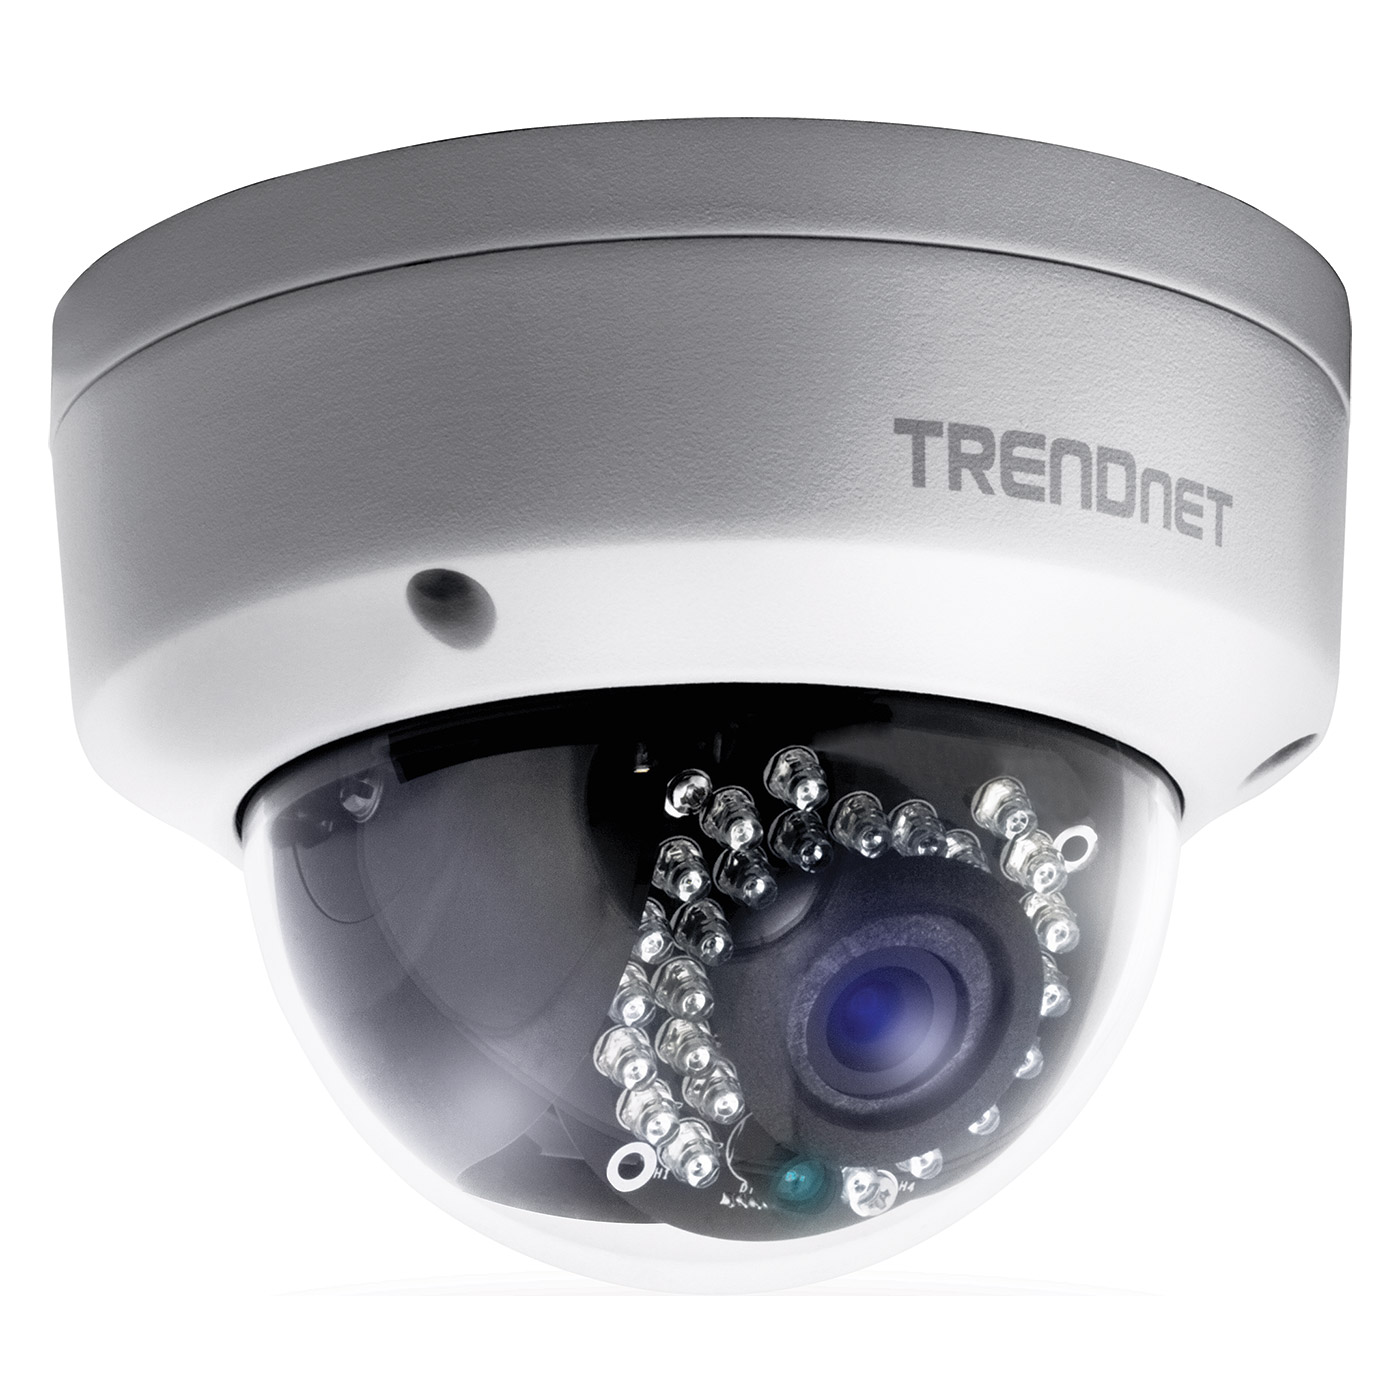 Trendnet tv ip321pi cam ra ip trendnet sur ldlc - Camera infrarouge exterieur ...